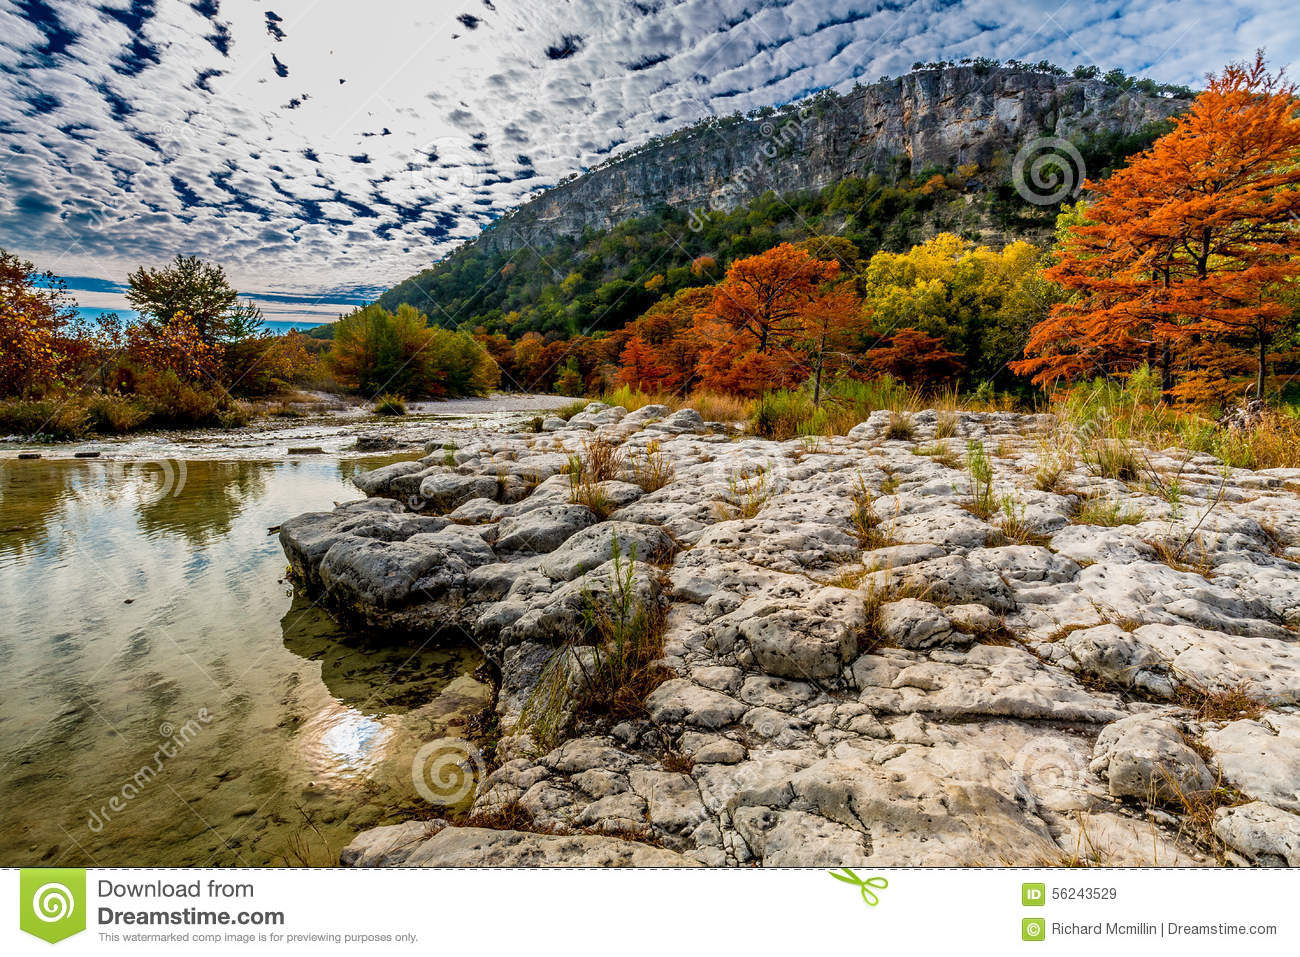 Trees with Fall Foliage on a Rocky Bank of the Frio River with Hill in Background